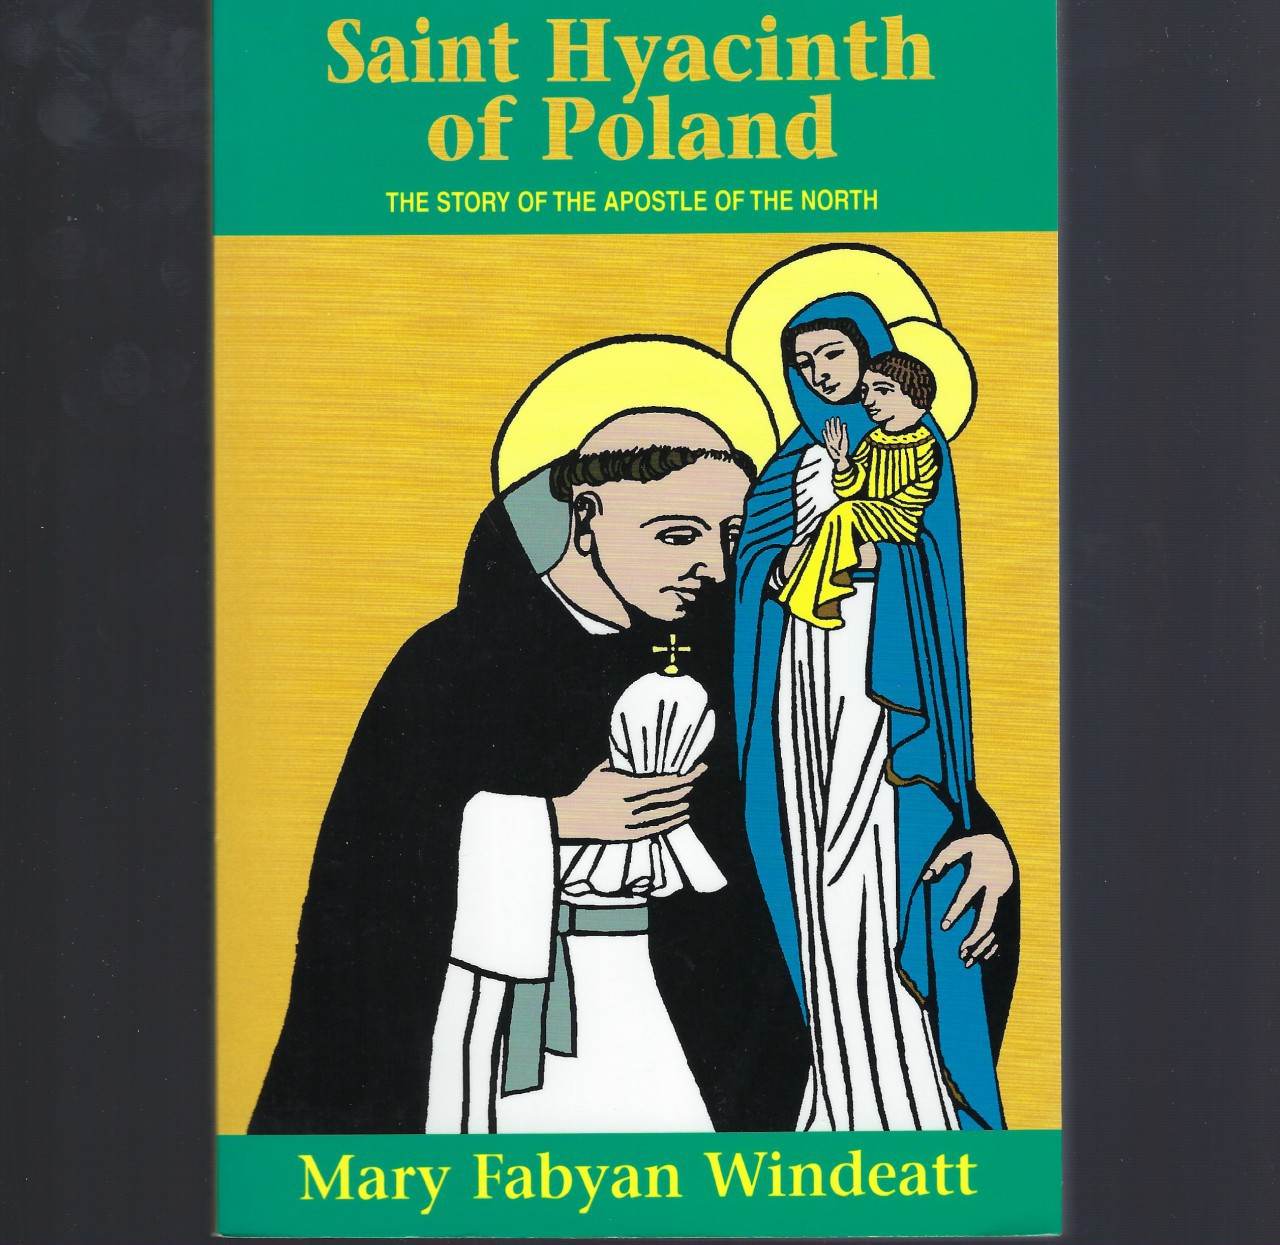 Saint Hyacinth Of Poland The Story of the Apostle of the North Mary Fabyan Windeatt, Mary Fabyan Windeatt